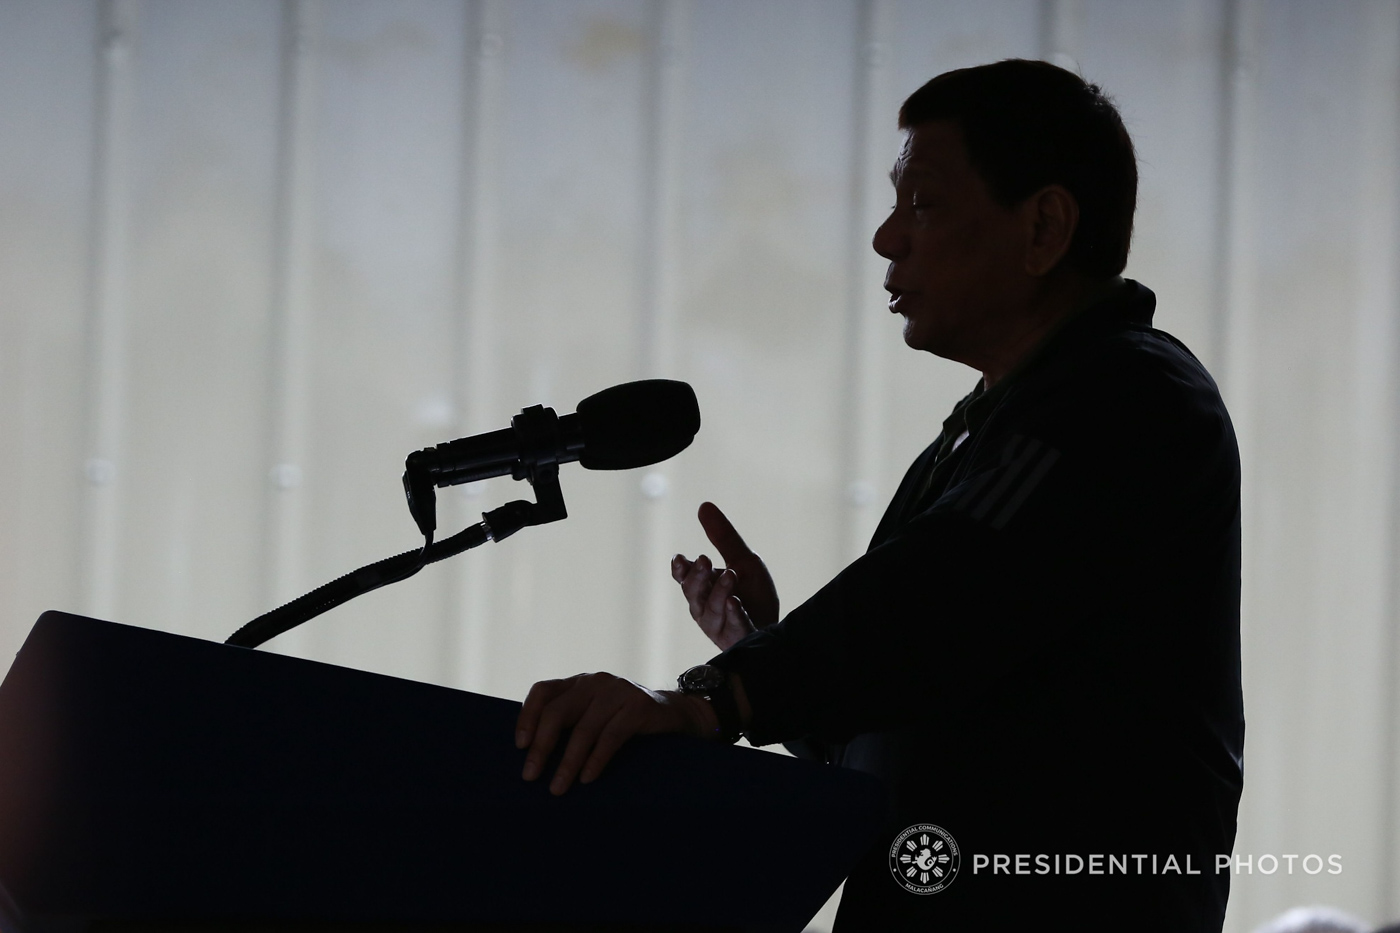 'THE PUNISHER.' President Rodrigo Duterte stands for the Filipino dream of 'swift justice.' Malacau00f1ang file photo